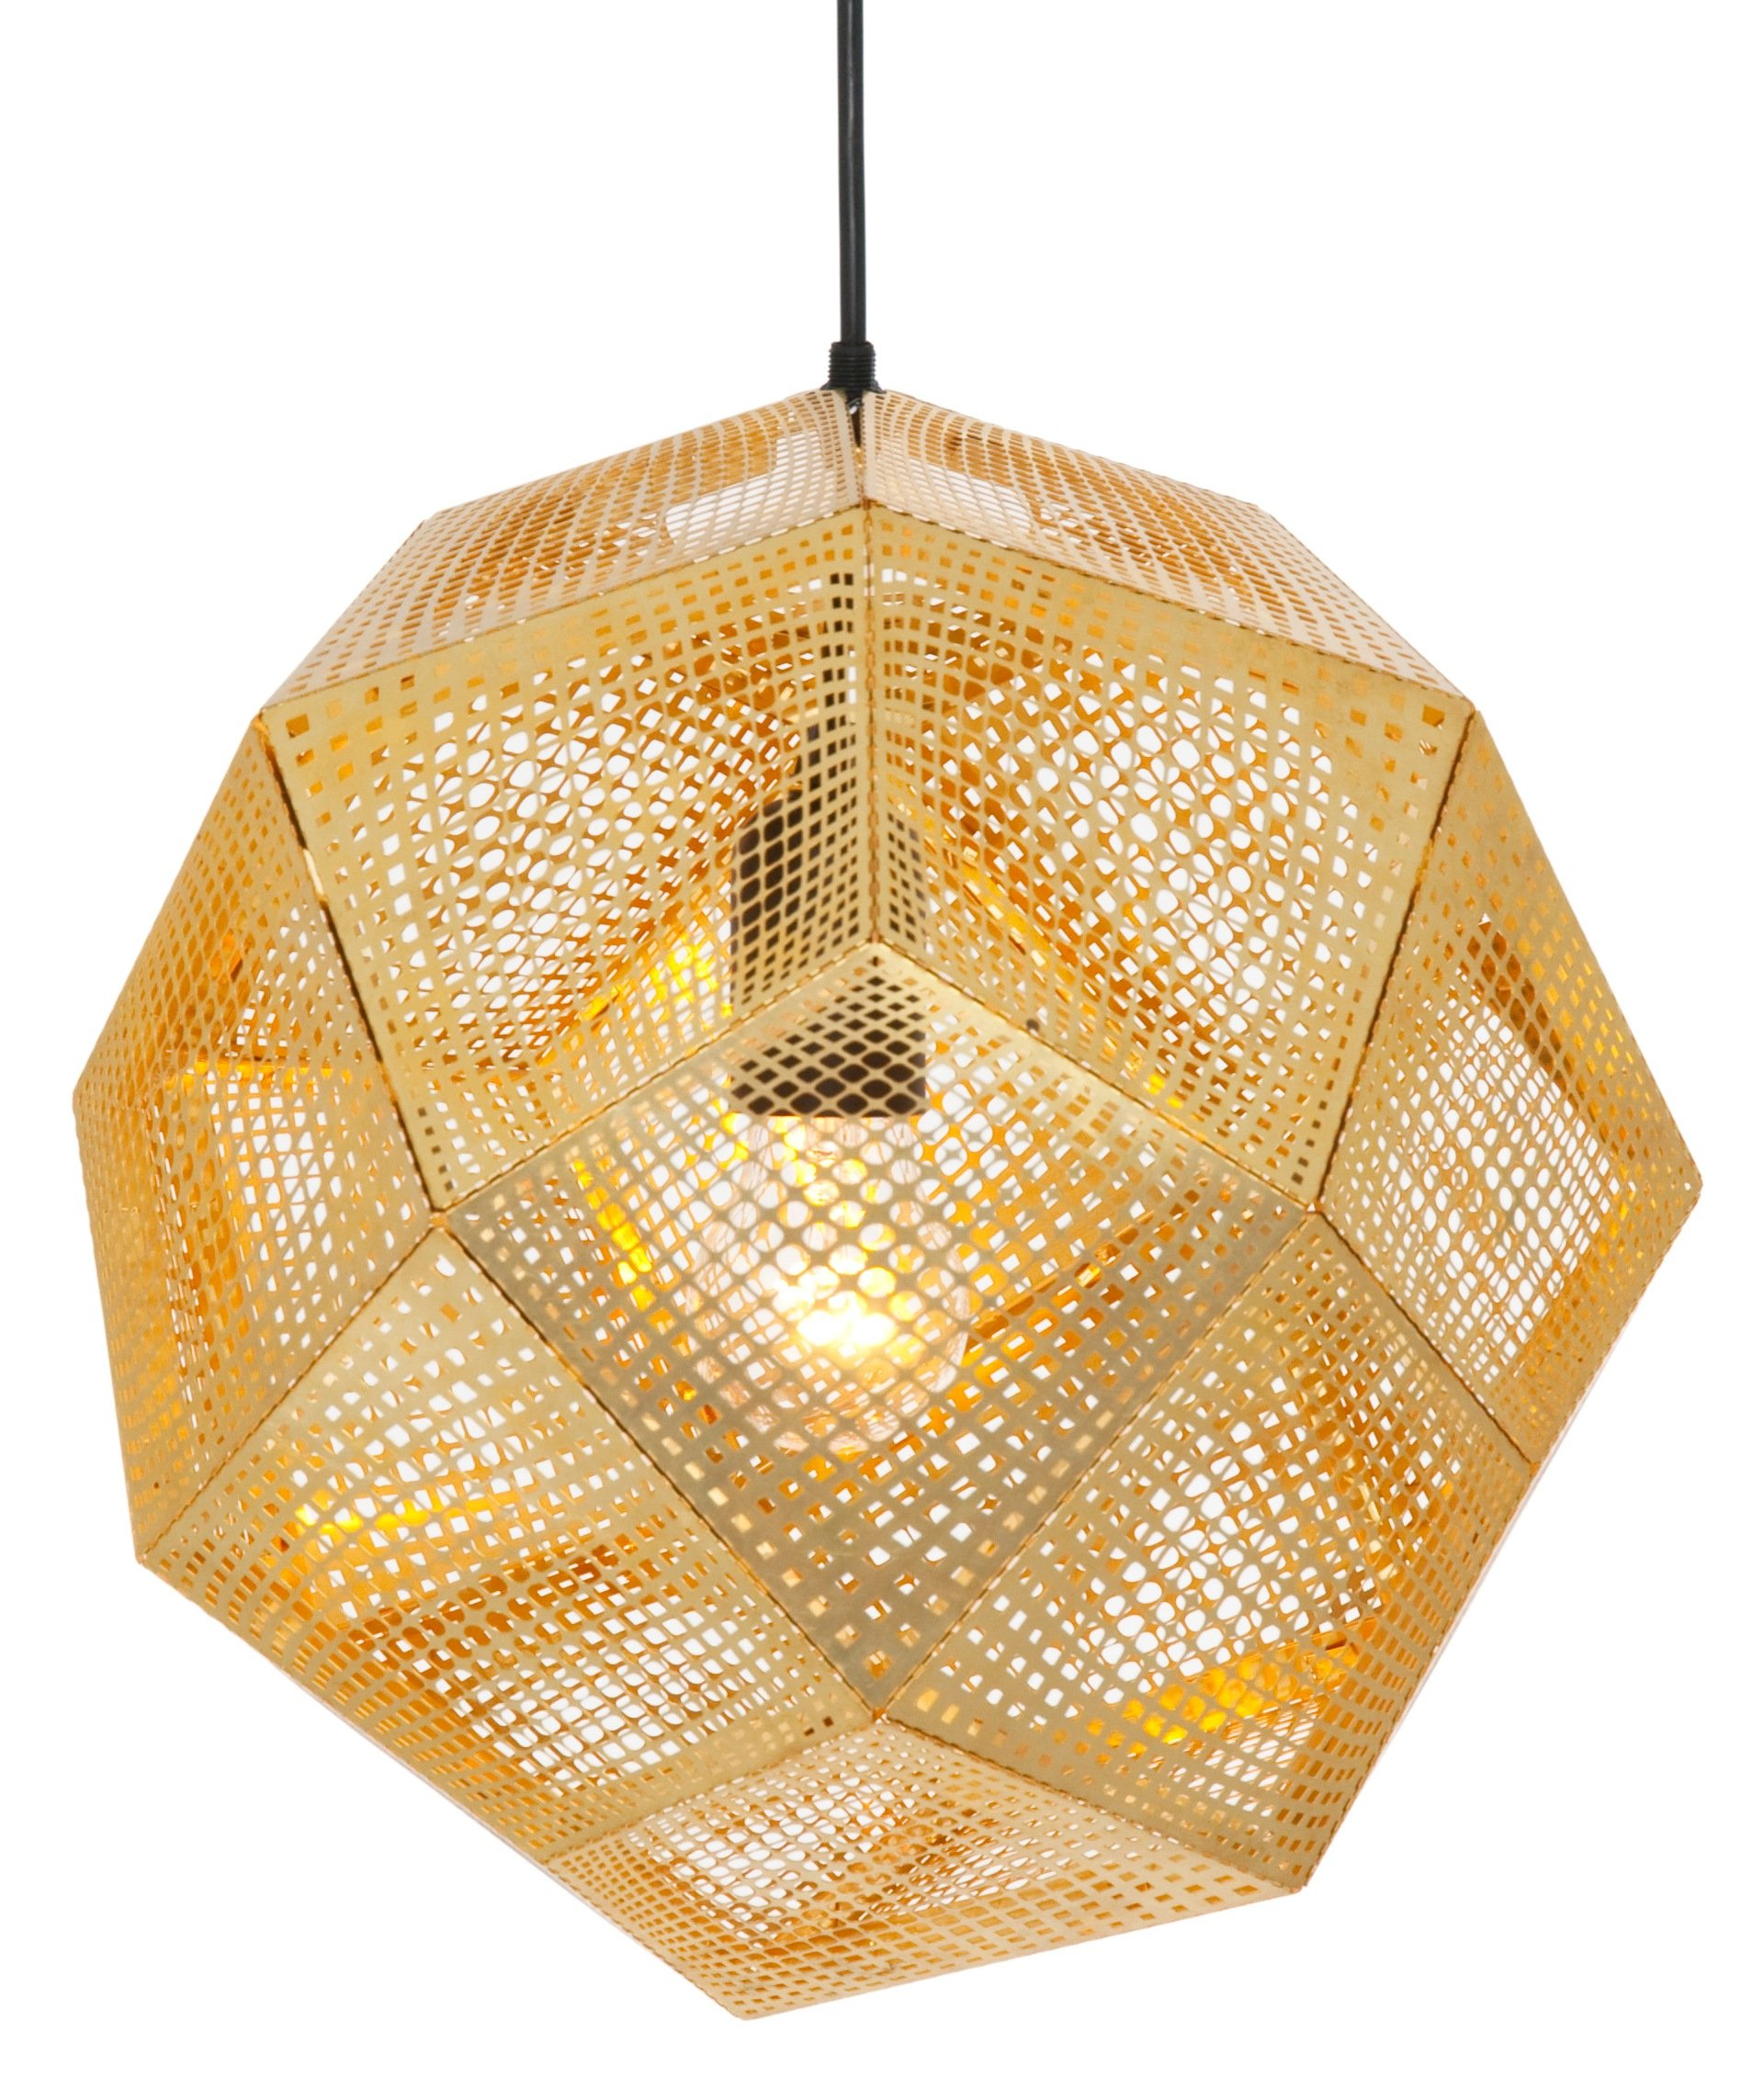 Tom dixon etch pendant scoop chair spot on modern Tom dixon lighting